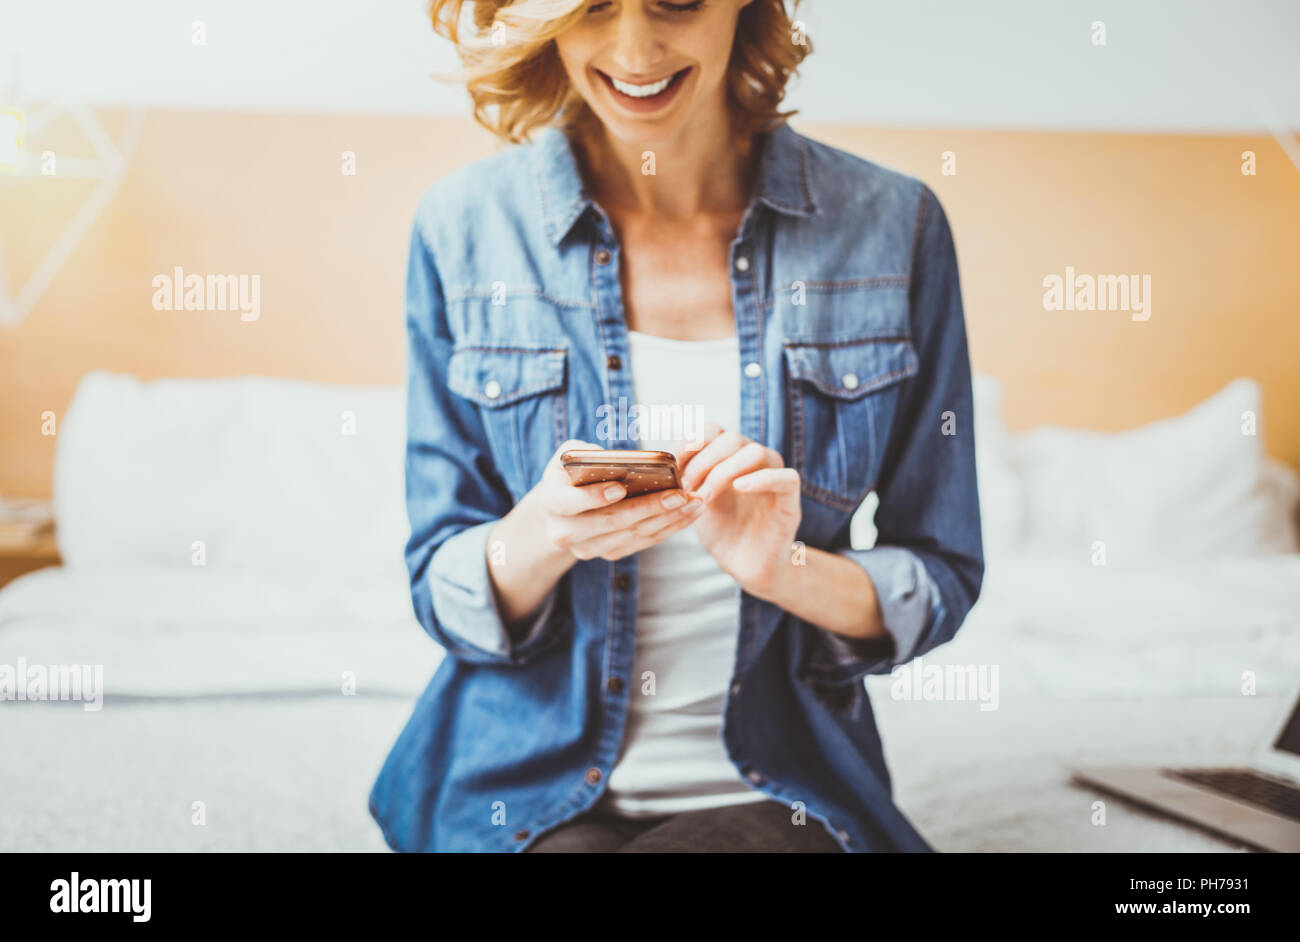 Funny woman looking at her gadget - Stock Image